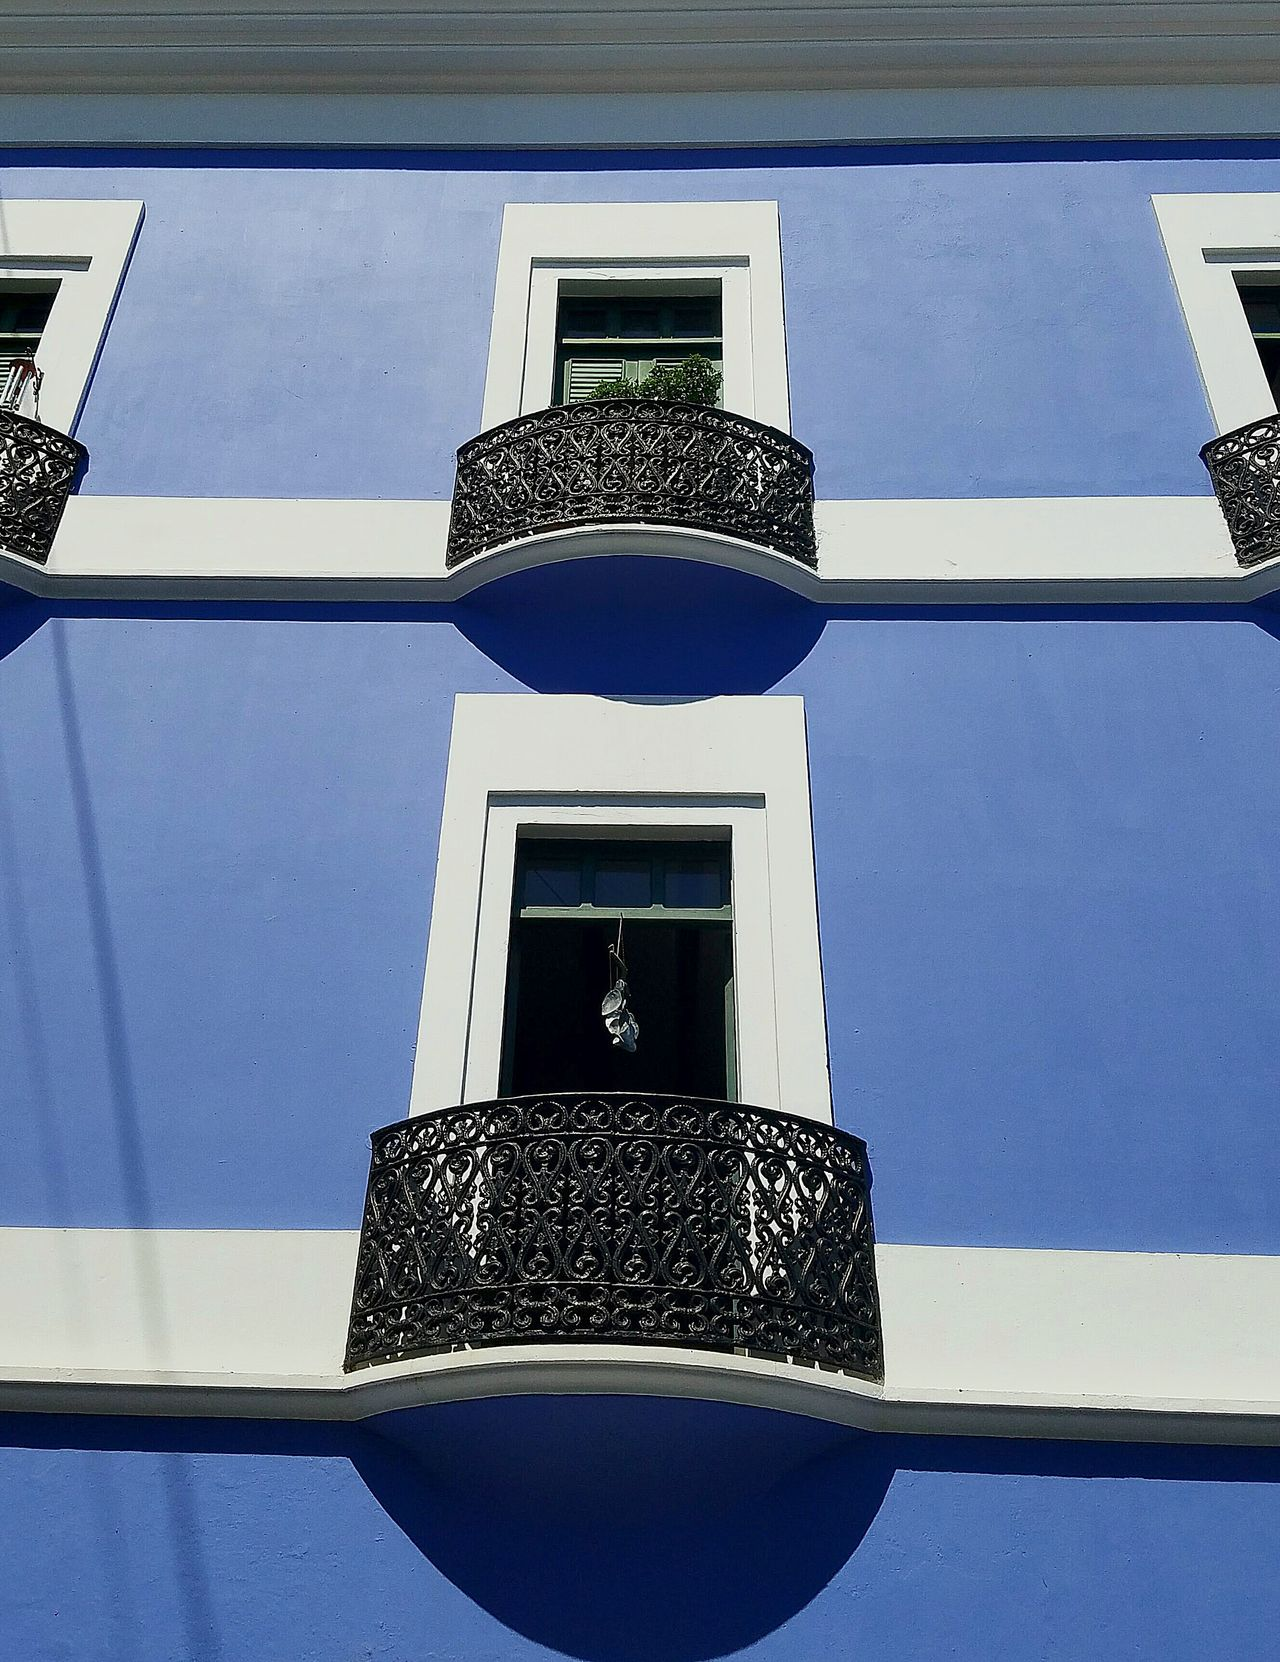 Building Exterior Perspective Lines And Angles Minimalism Color Block The Architect - 2017 EyeEm Awards Architectural Detail Simplicity Simple Elegance Minimalist Architecture Urban Landscape Light And Shadow Colors Of My City San Juan PR Fine Art Photography Urban Exploration Blue